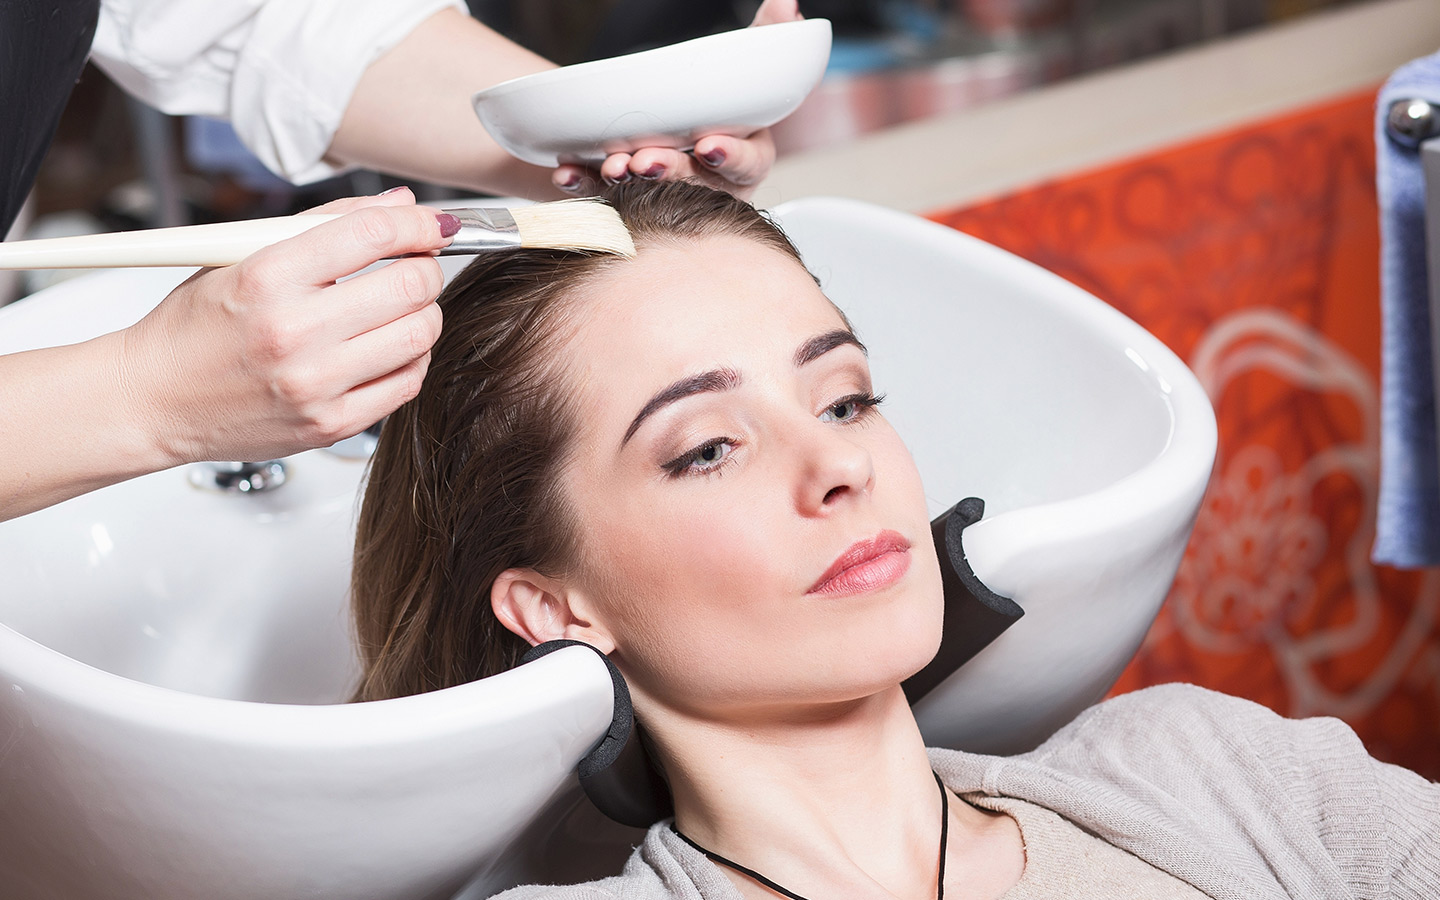 Women's hair being dyed in one of the salons in Dubai